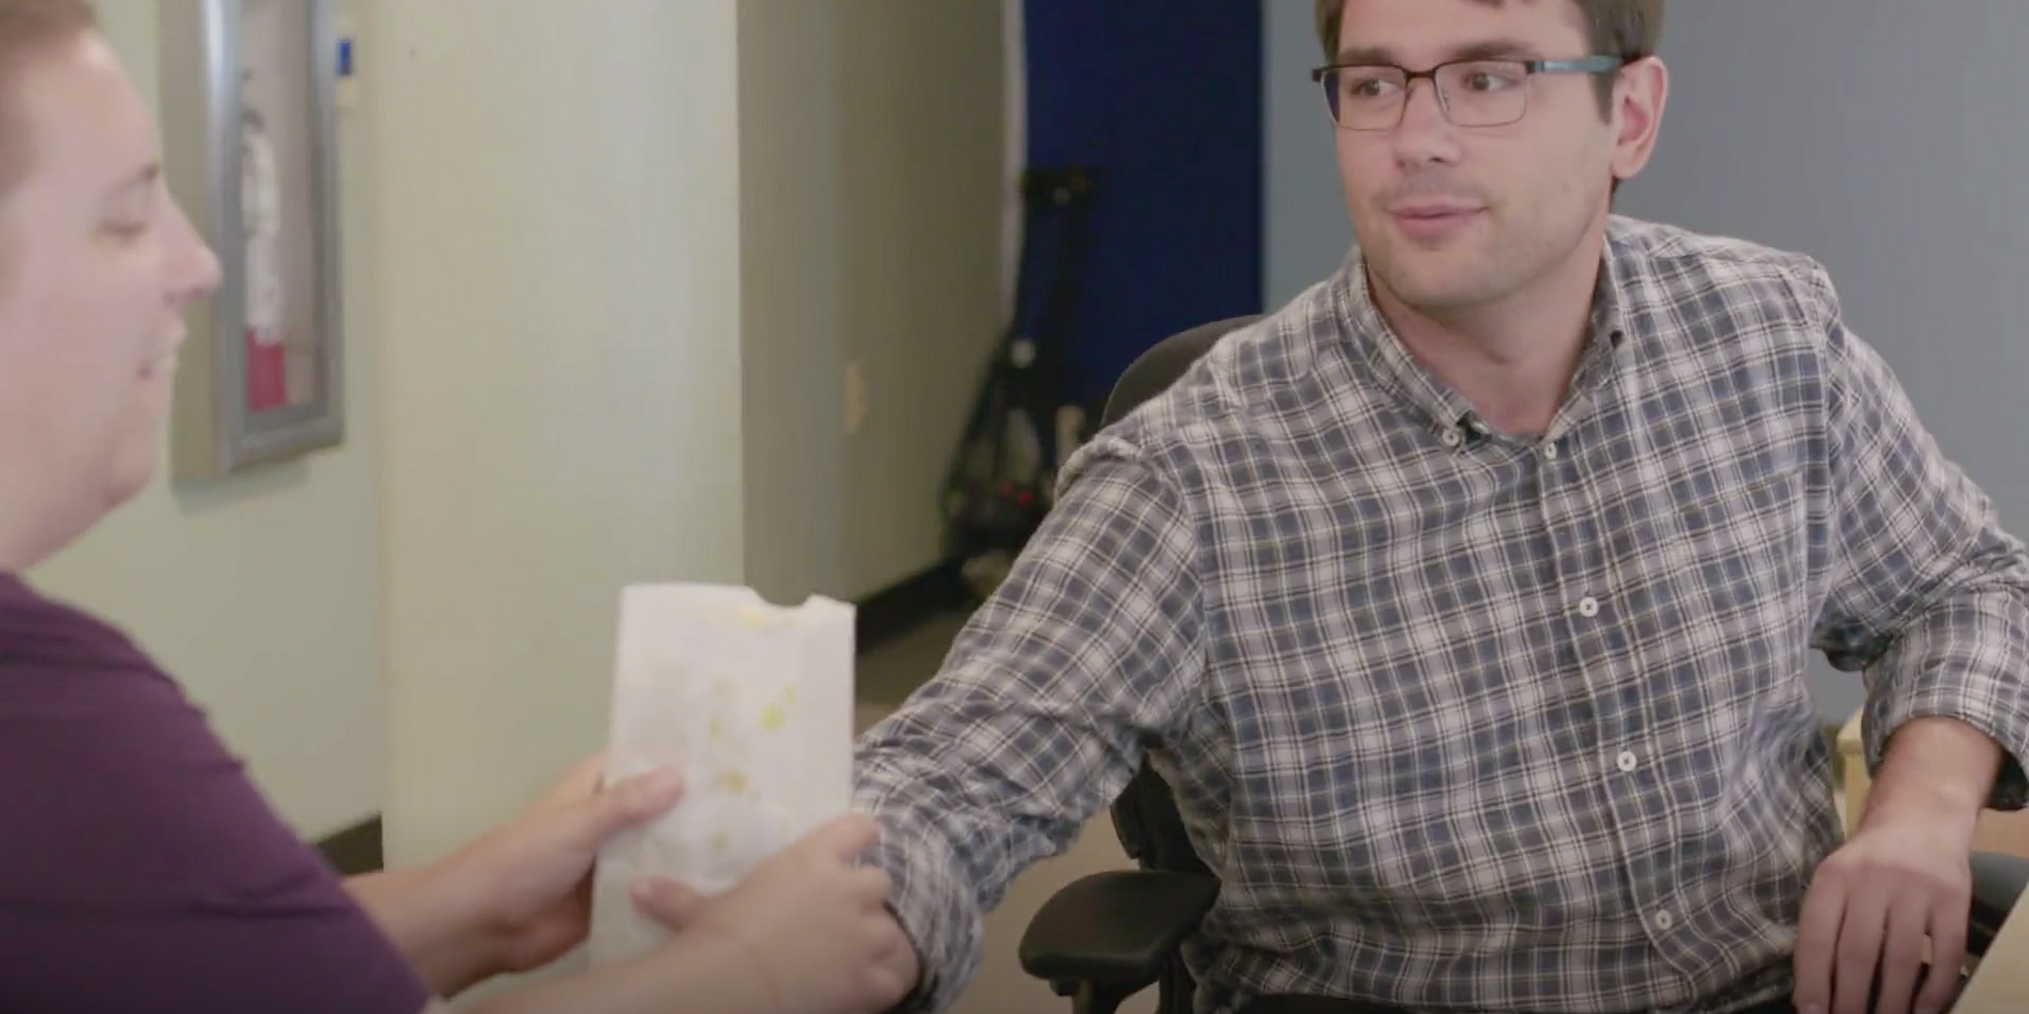 Why We Hired a Popcorn Manager: Employment Opportunities for People with Developmental Disabilities | Widen